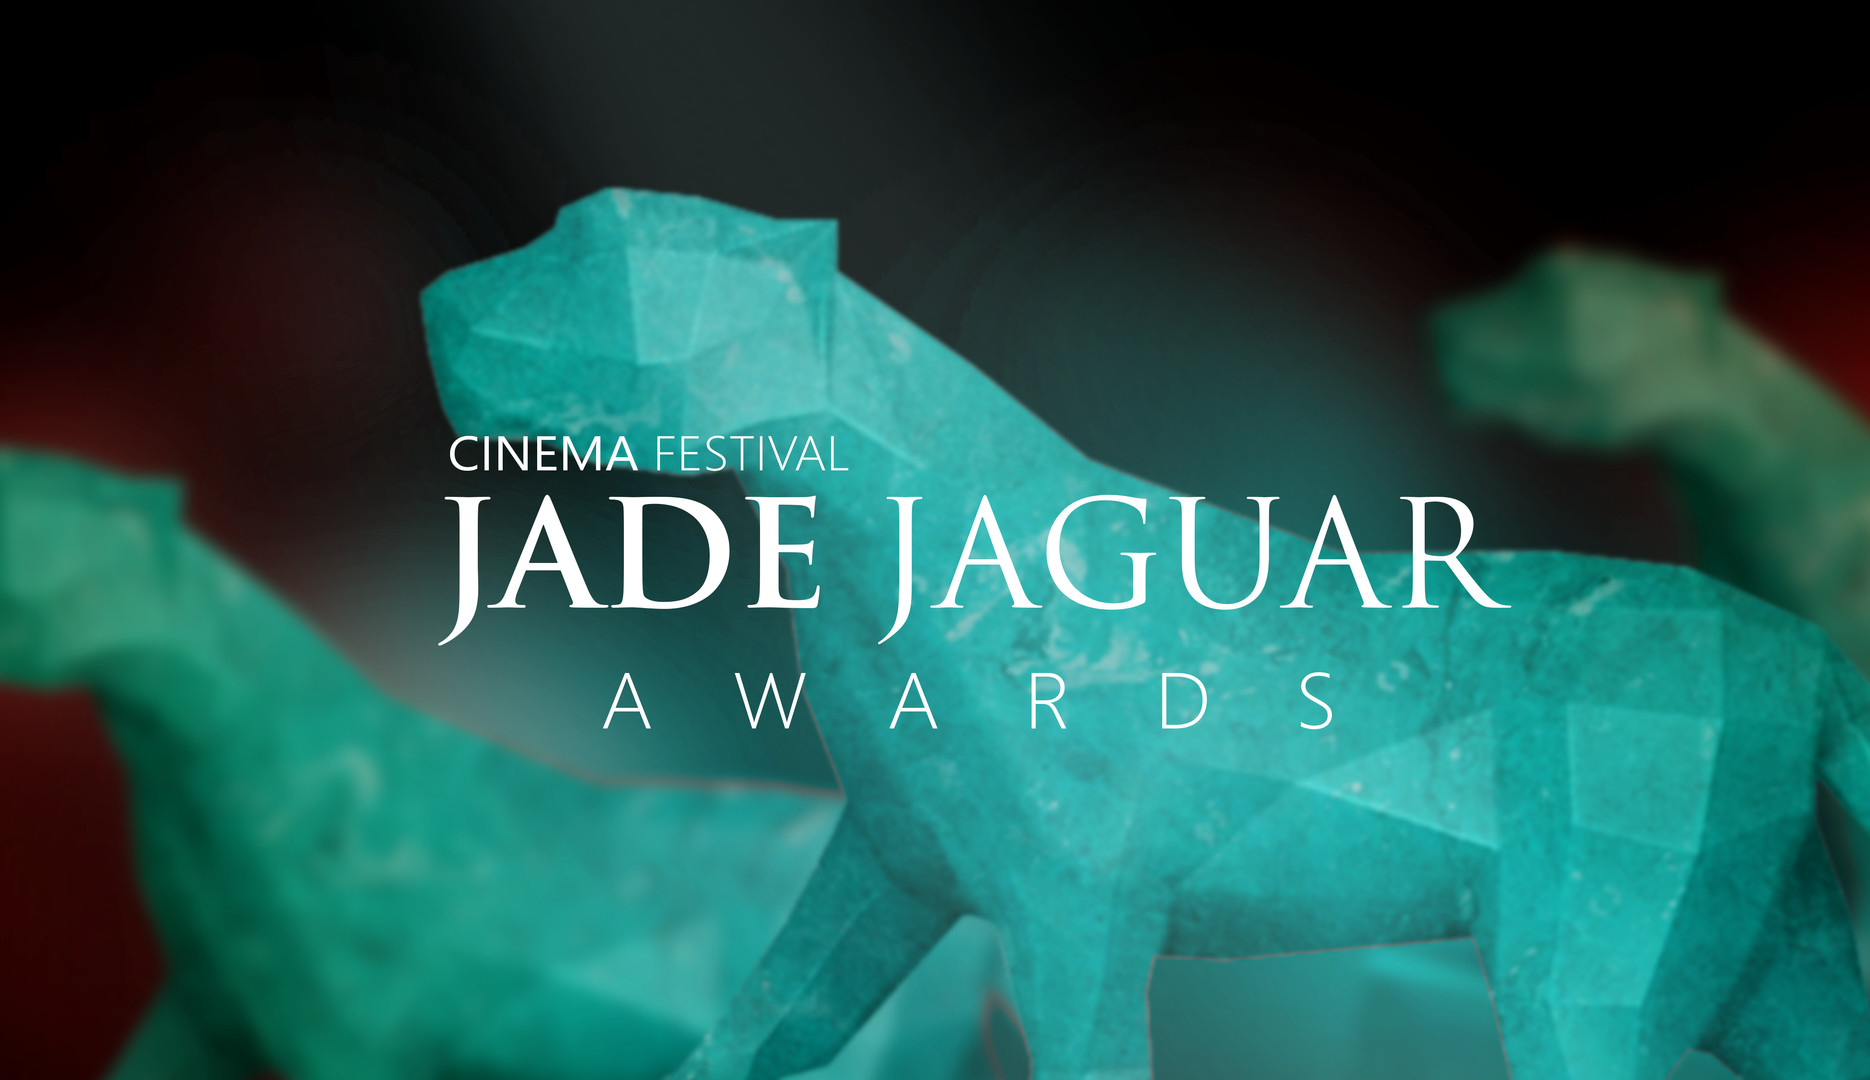 Jadejaguar award